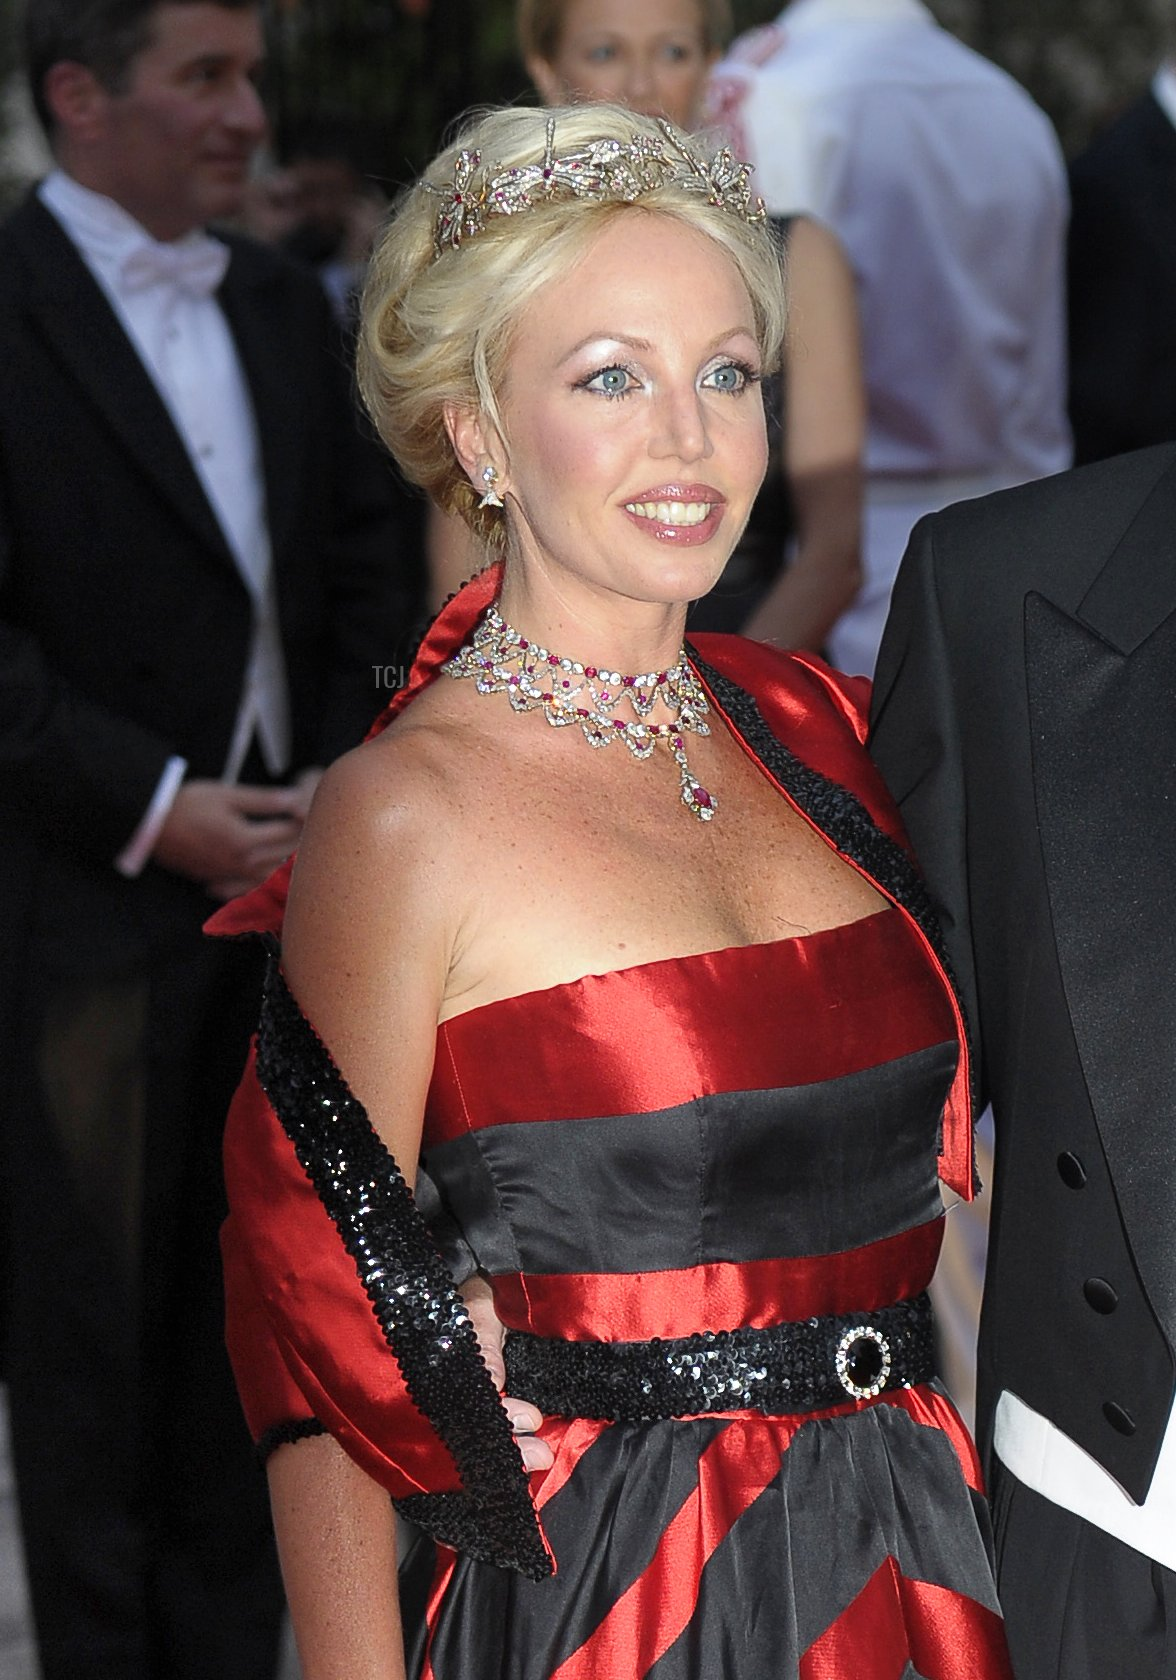 The wife of Italy's Prince Carlo of Bourbon-Two Sicilies, Camilla Cruciani, arrives at a dinner at the Opera terraces after the religious wedding ceremony of Princess Charlene of Monaco and Prince Albert II of Monaco on July 2, 2011 in Monaco